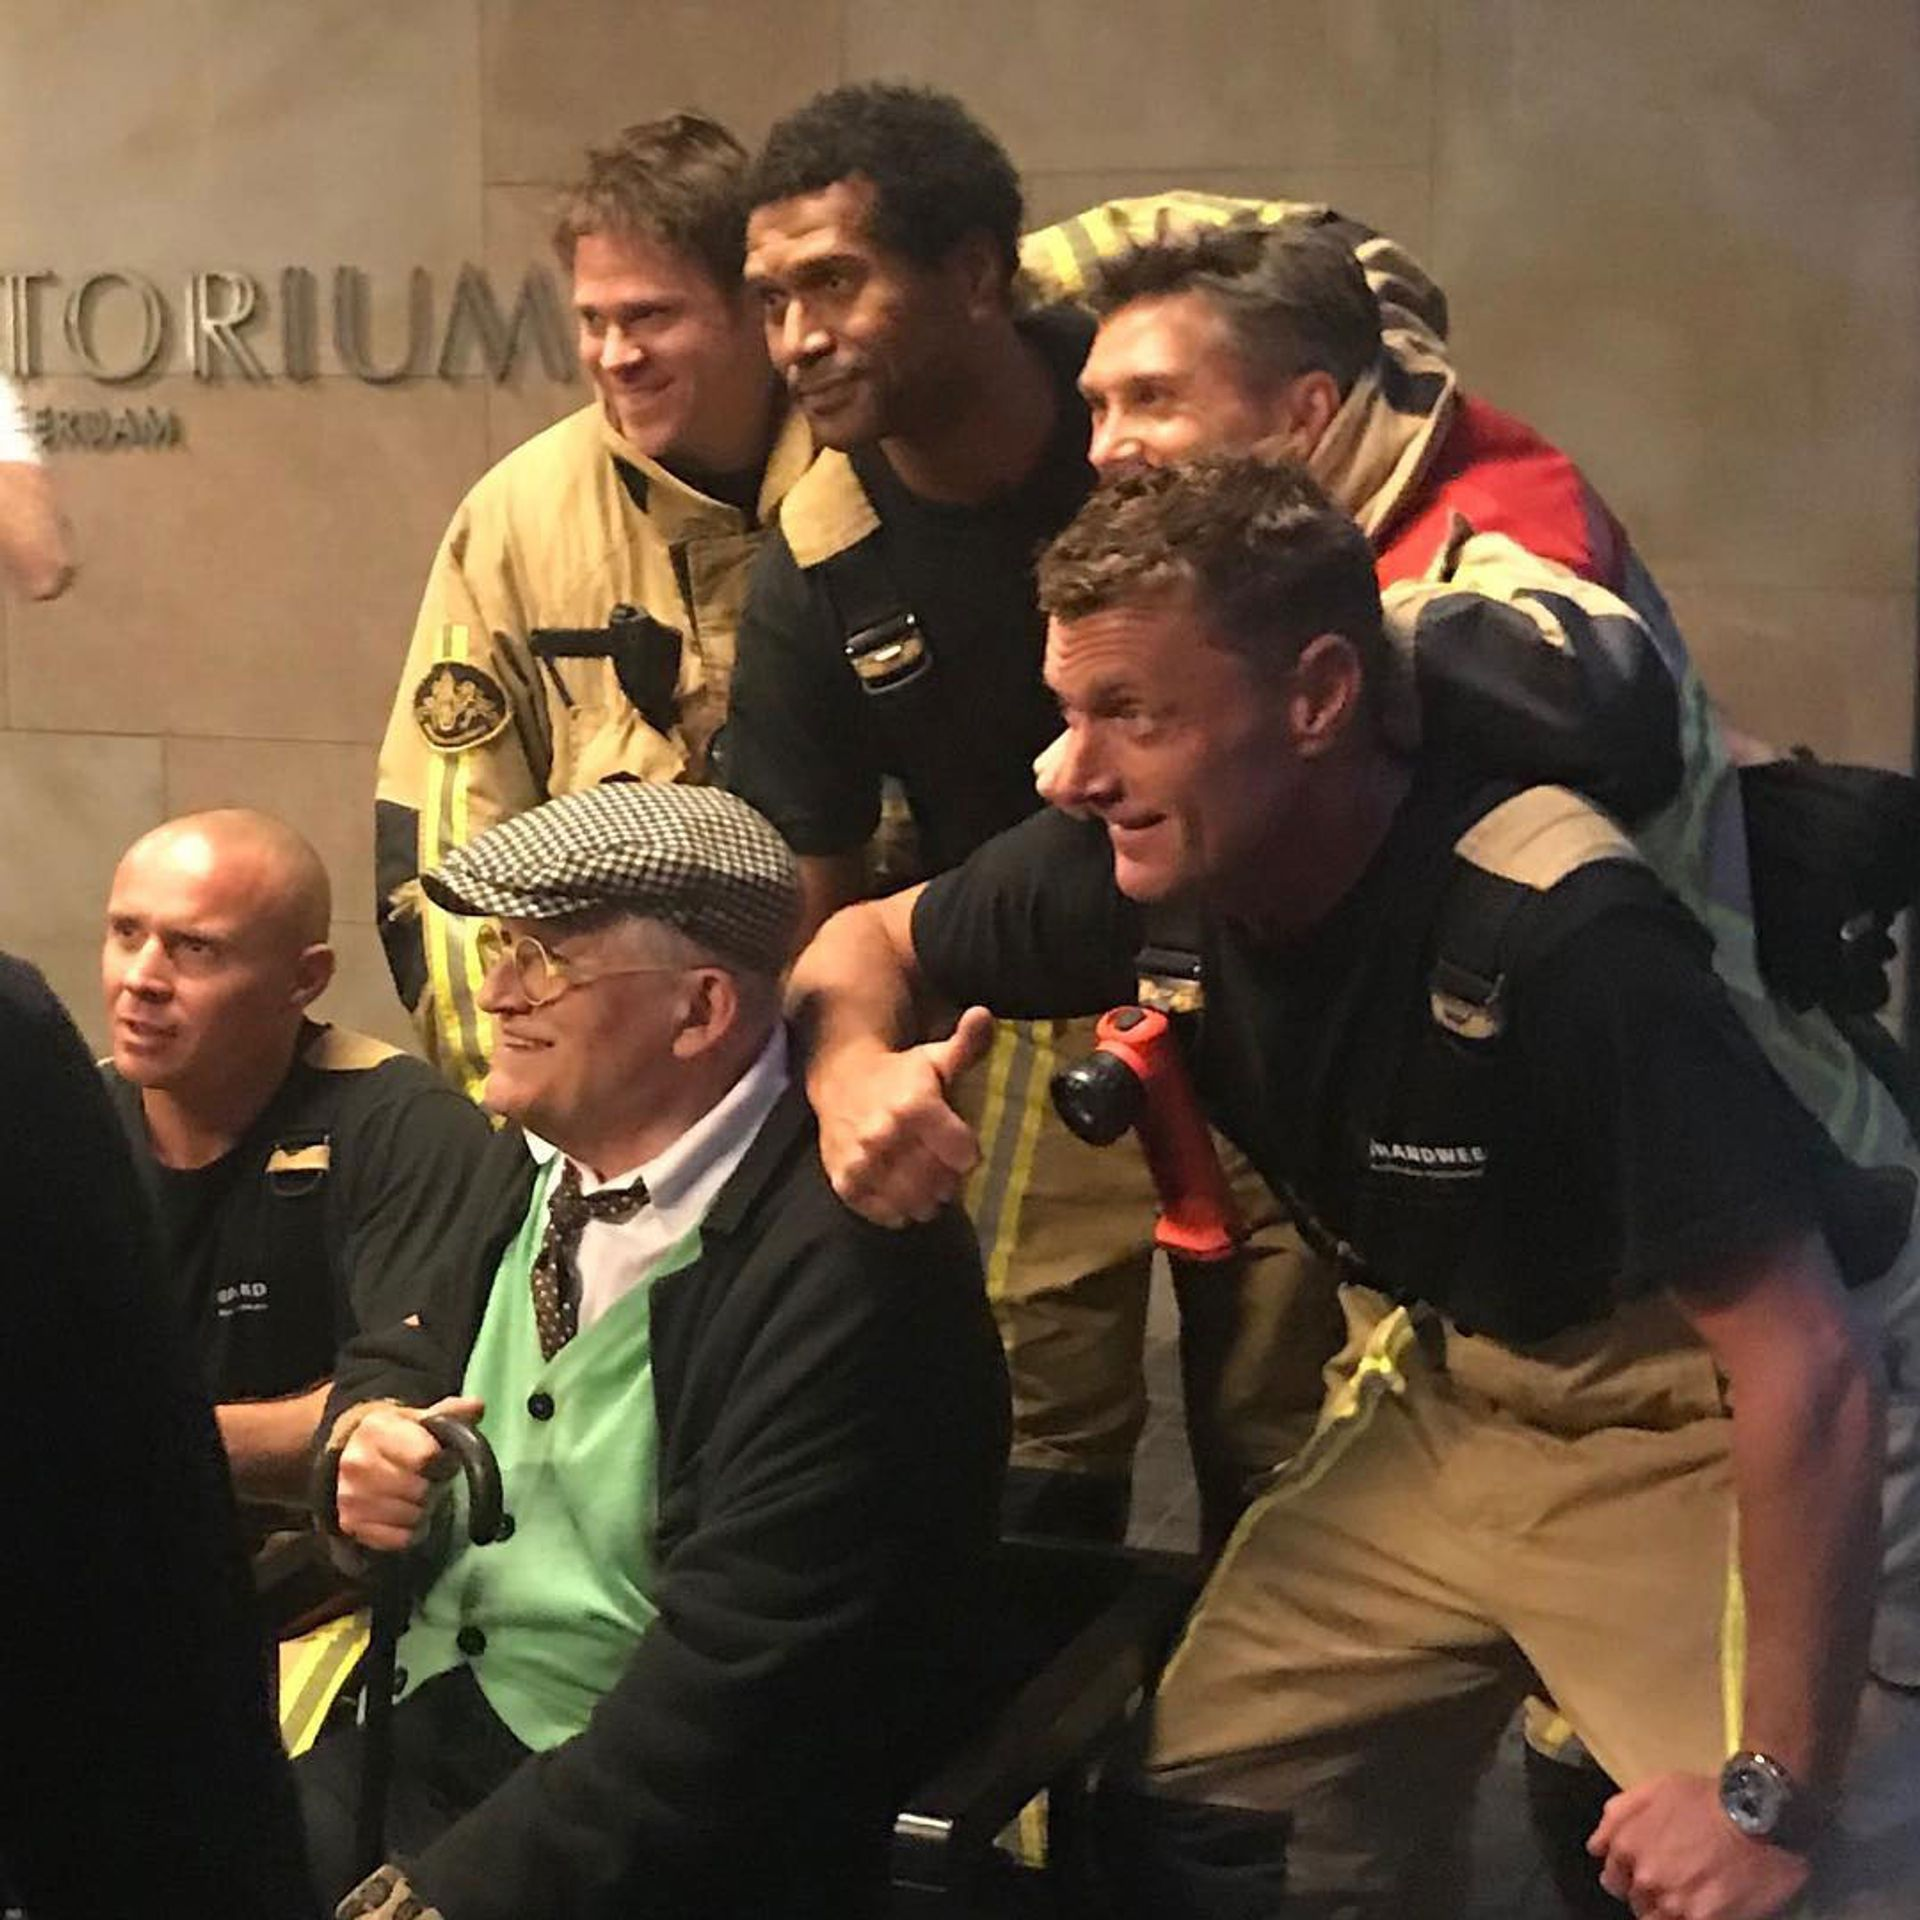 David Hockney with the Dutch firemen who rescued him from a lift in Amsterdam © davidelidawson/Instagram